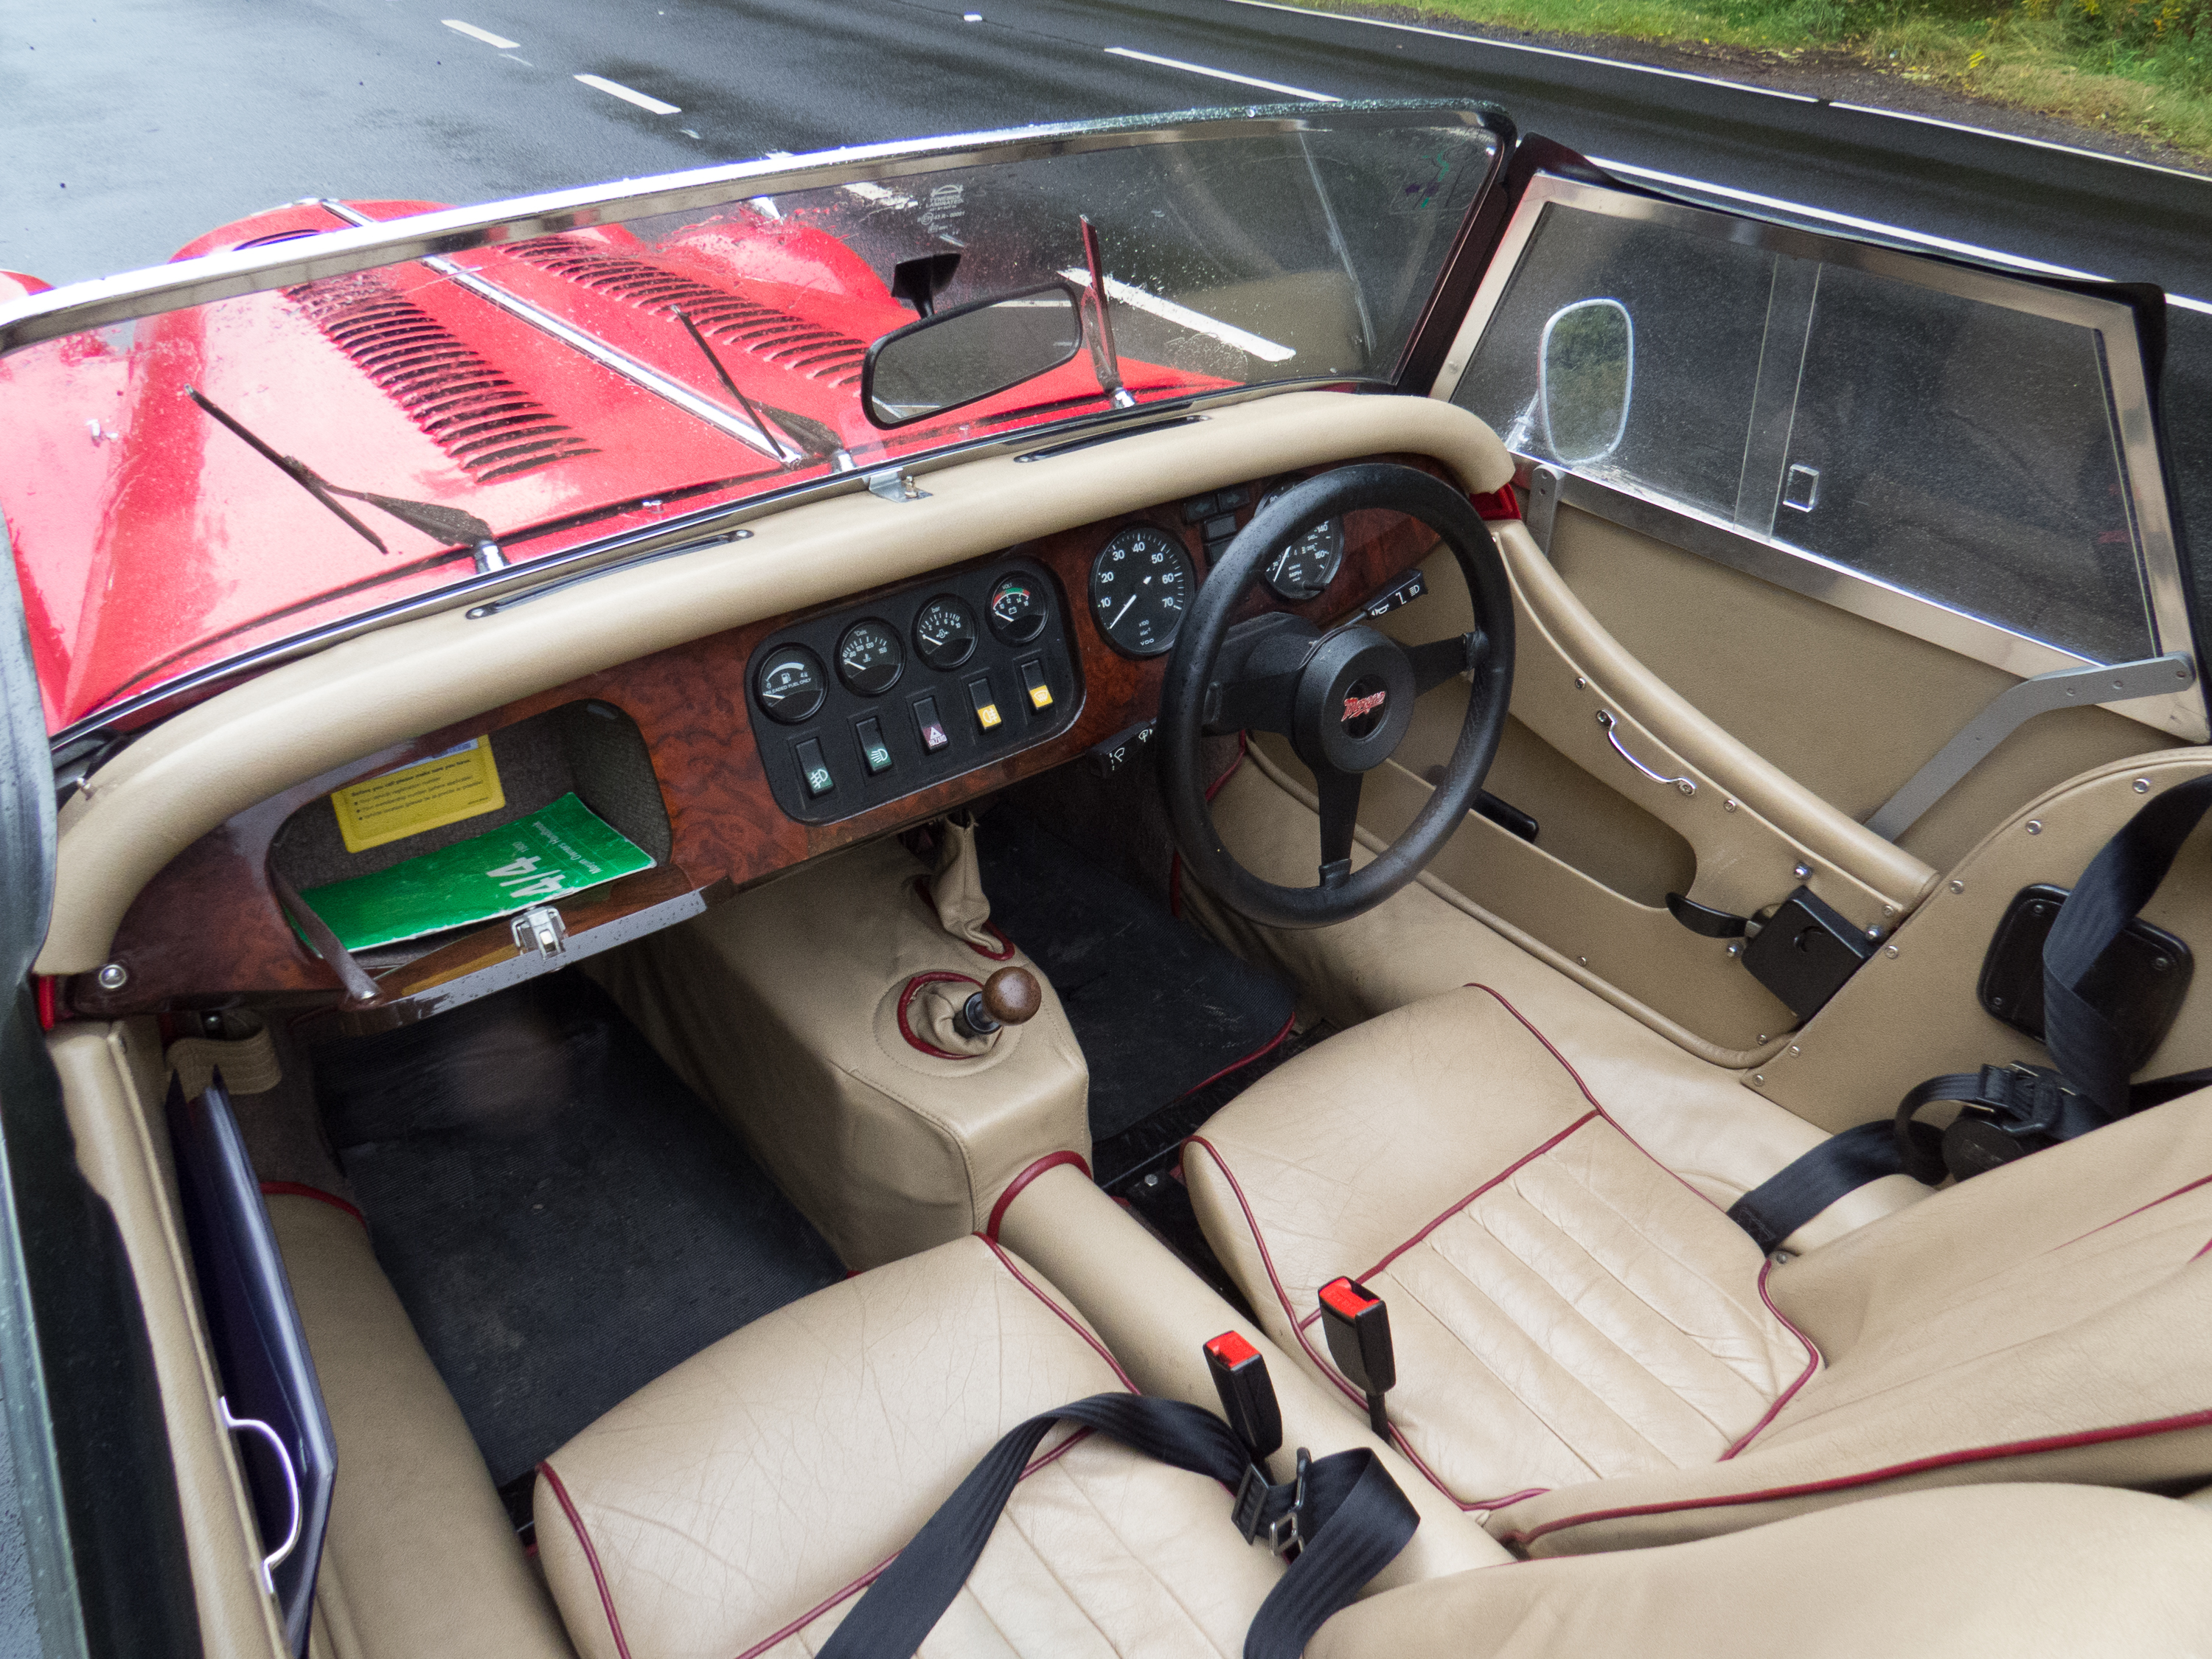 Timeless interior. There's even a radio!